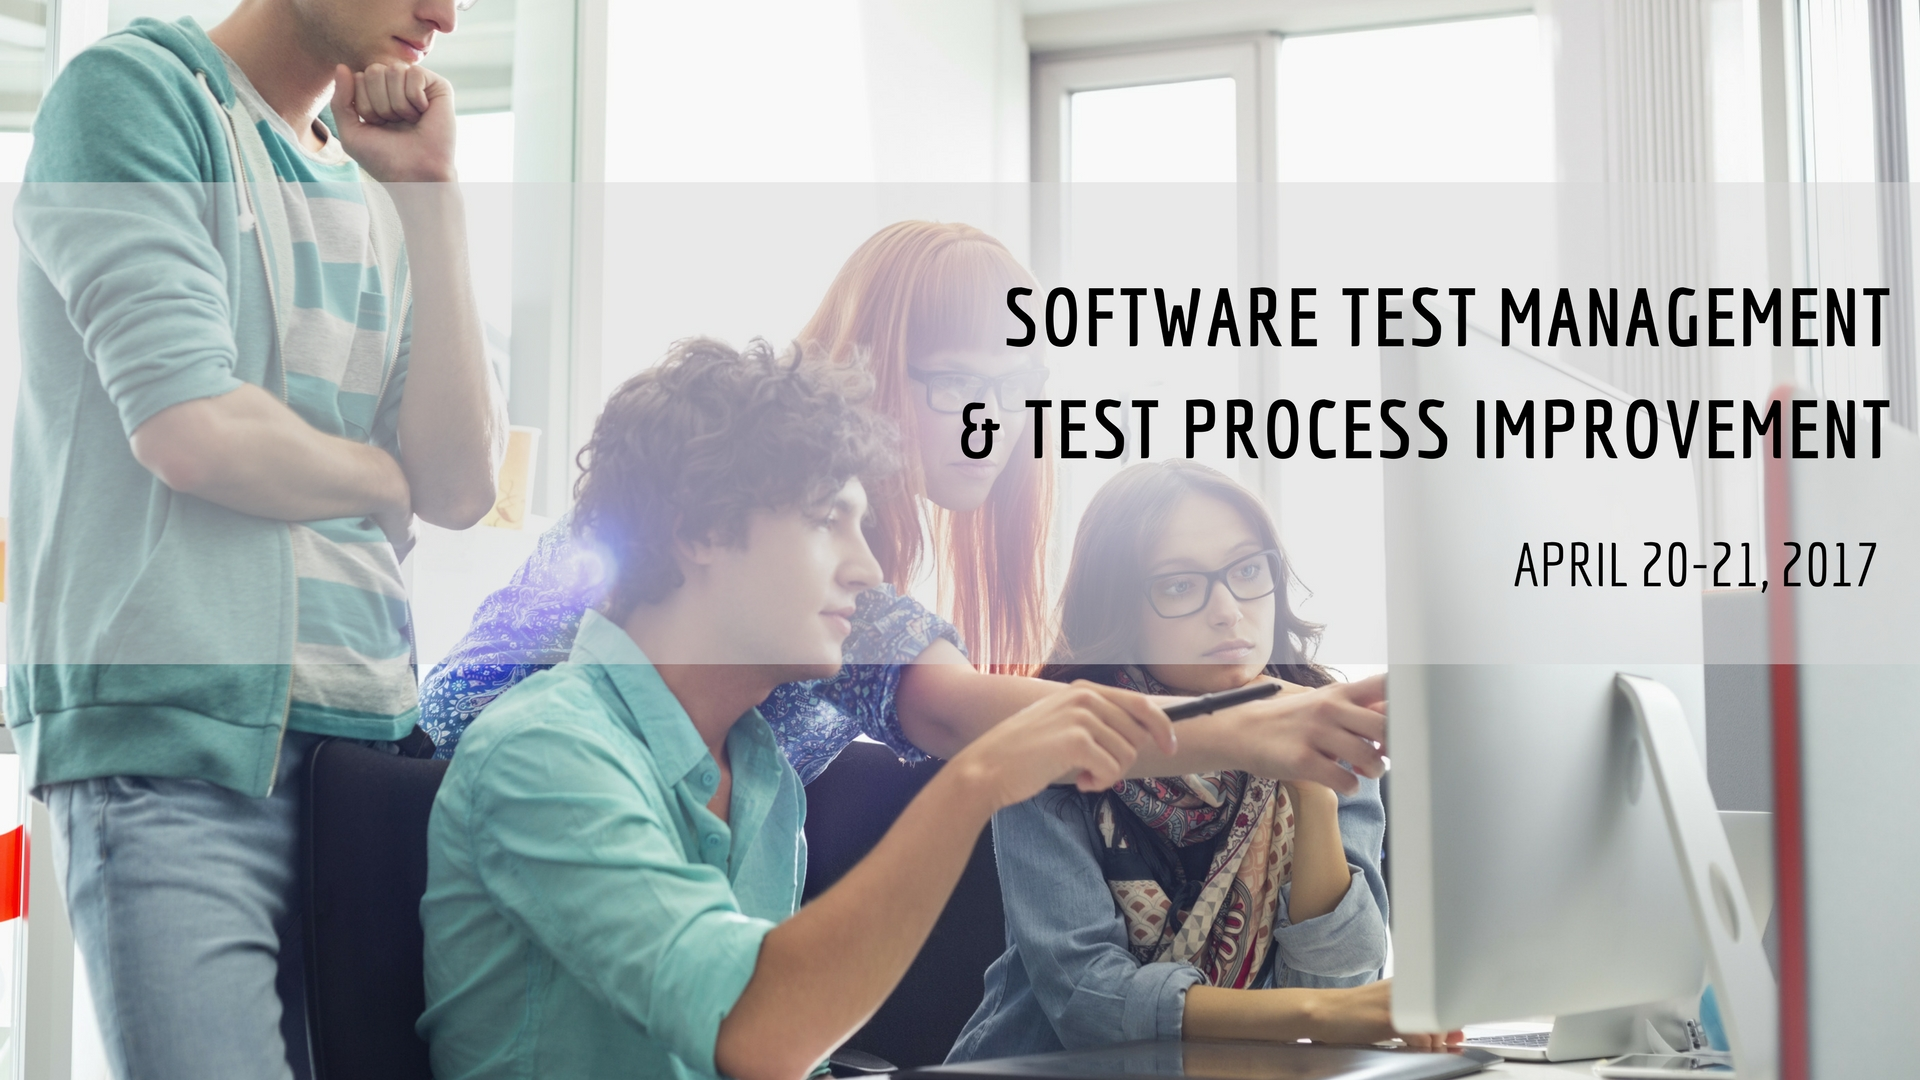 Software Test Management And Test Process Improvement